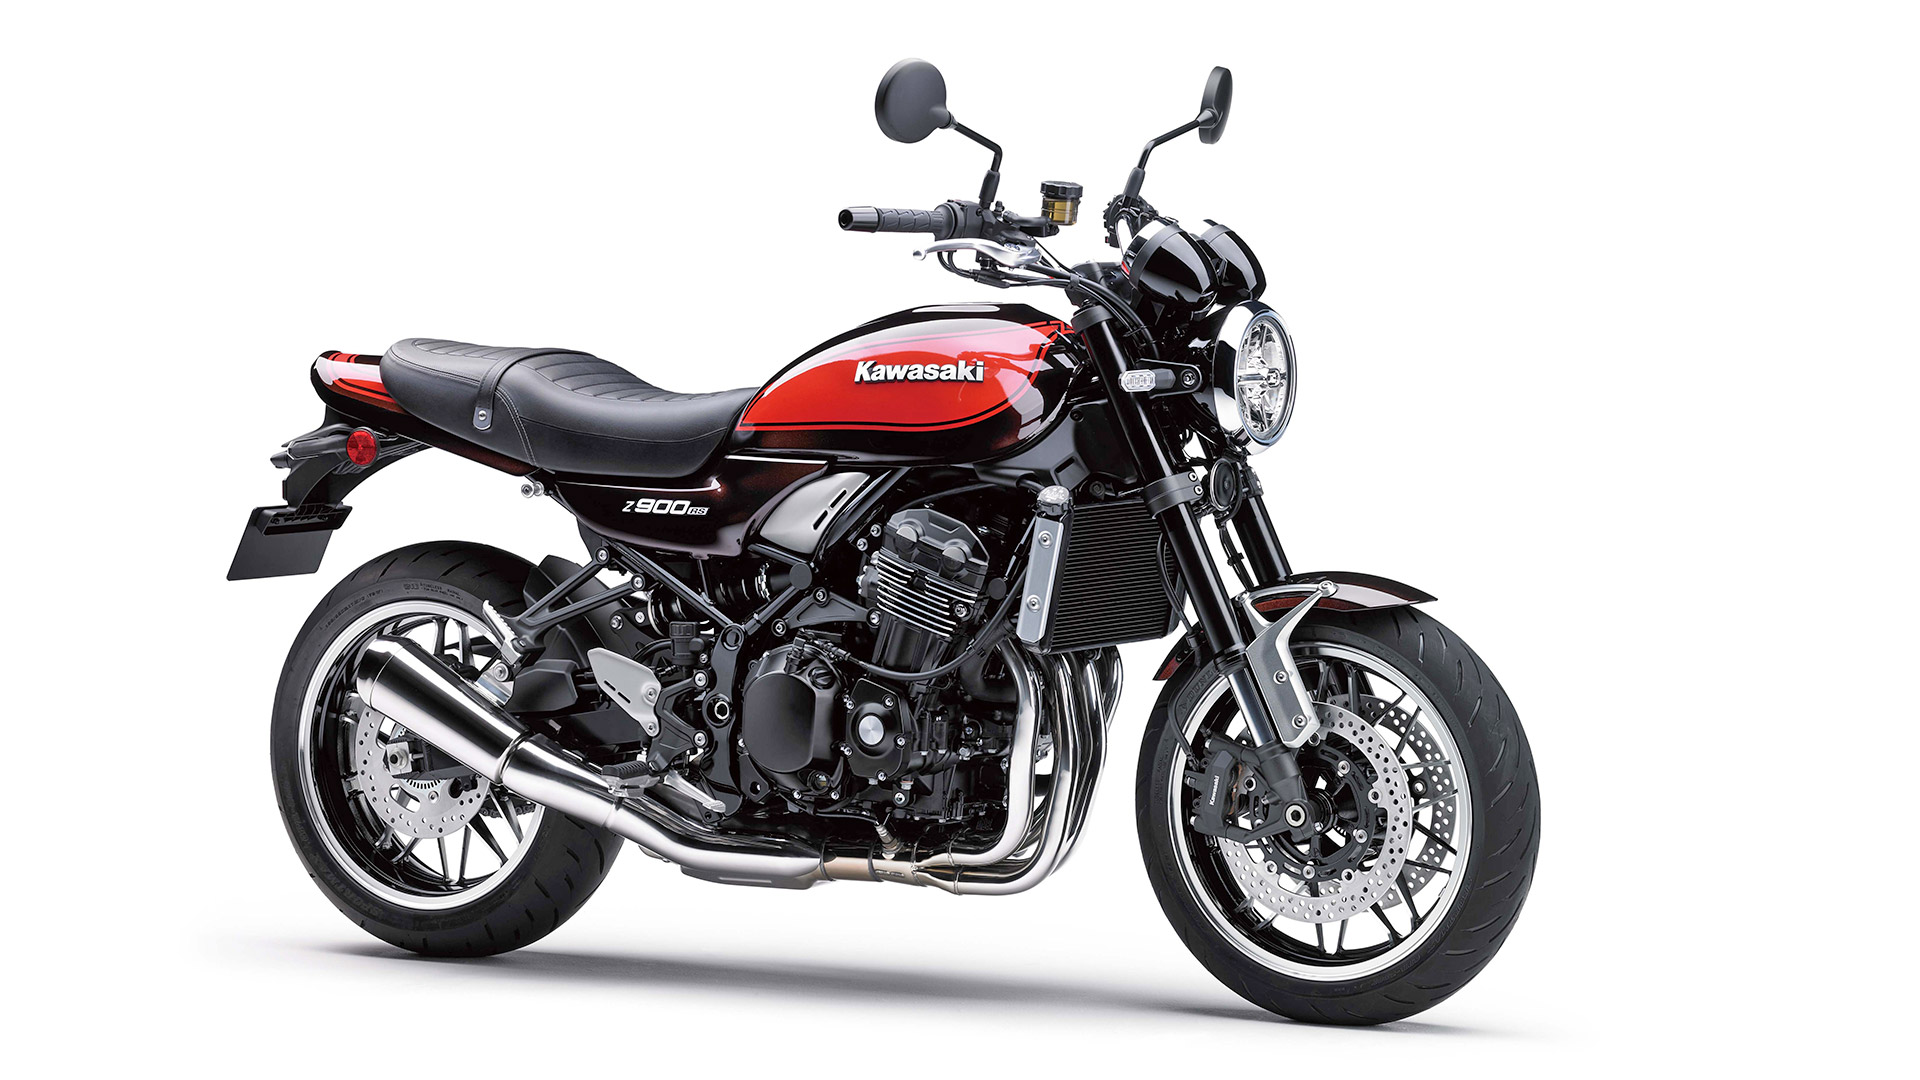 Upcoming Jeep In India 2018 >> Kawasaki Z900 2018 - Price, Mileage, Reviews, Specification, Gallery - Overdrive